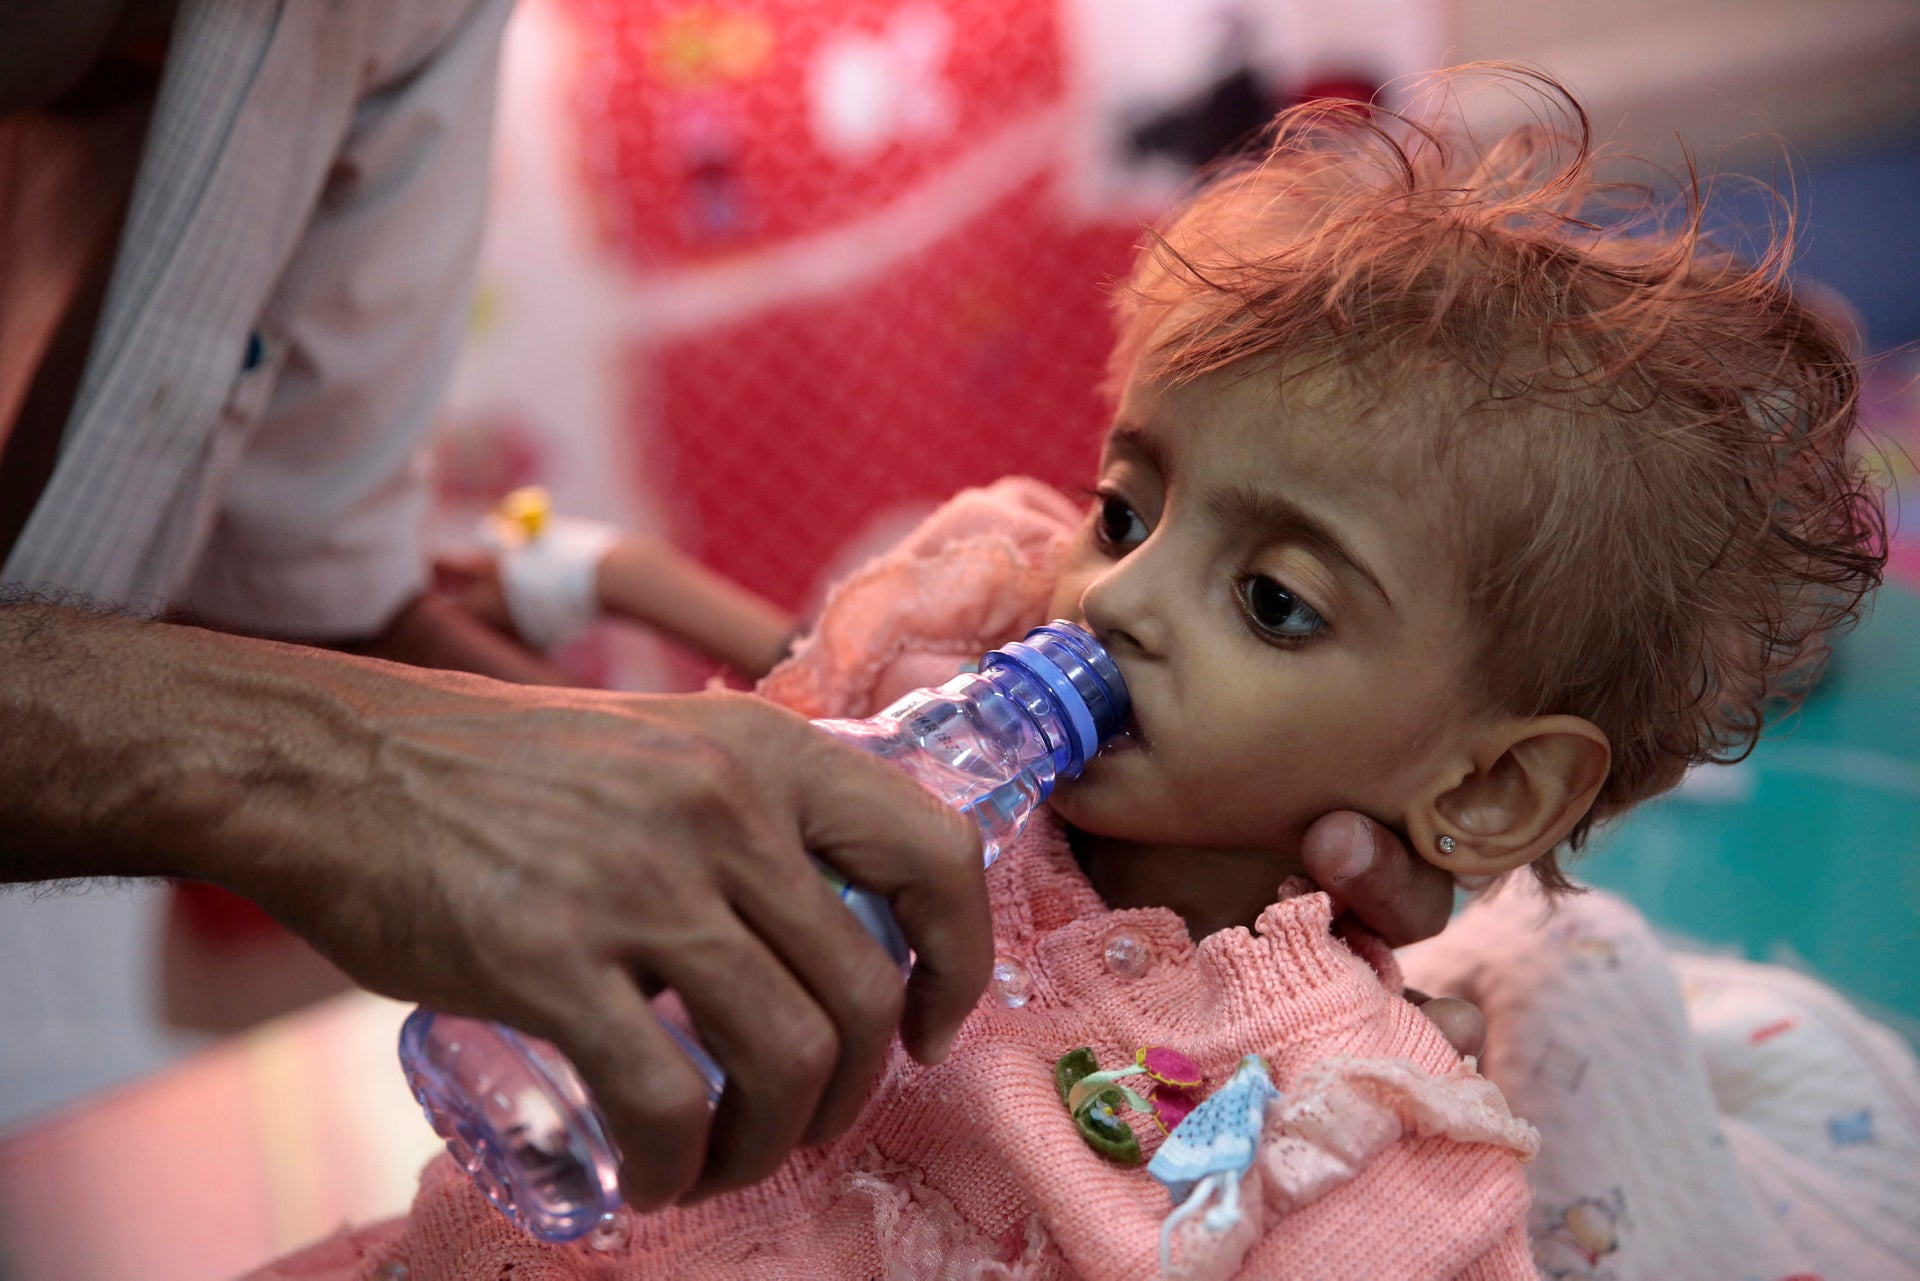 A father gives water to his malnourished daughter at a feeding center in a hospital in Hodeida, Yemen,  Sept. 27, 2018.